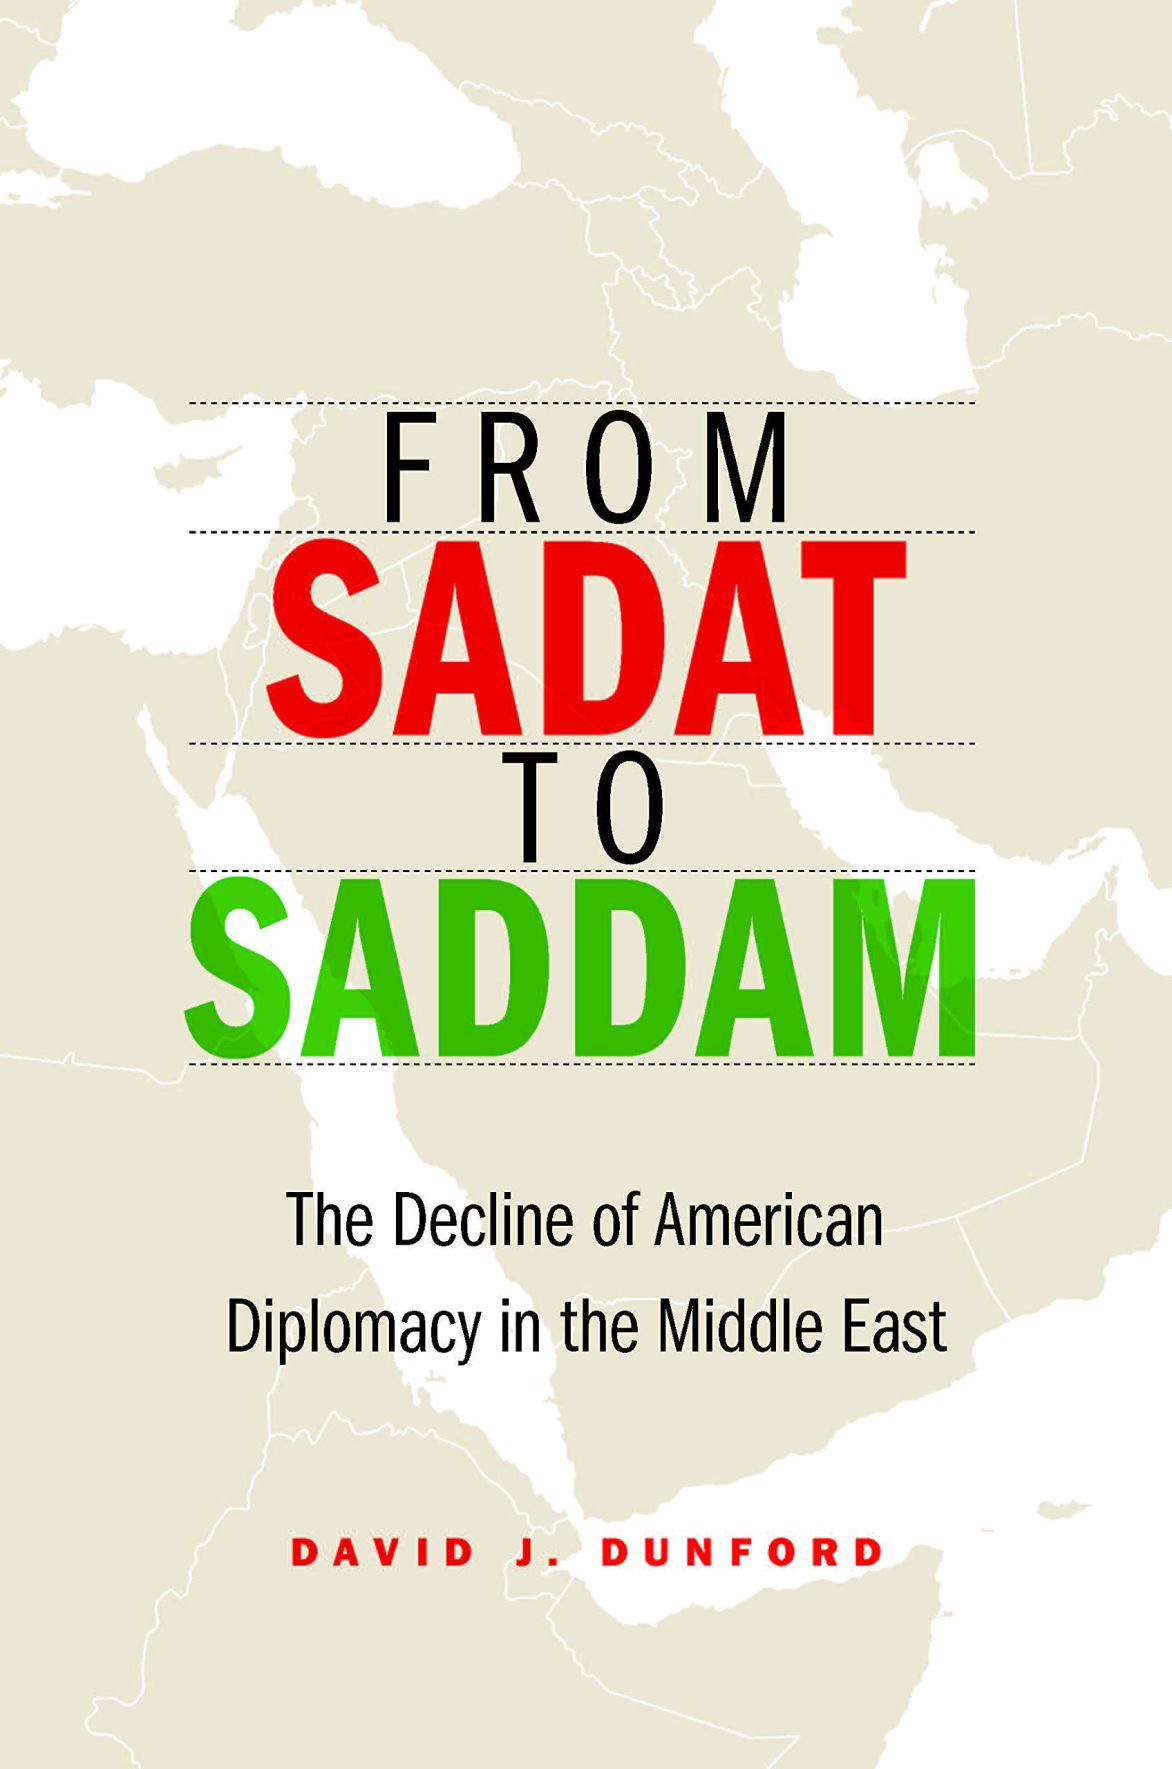 From Sadat to Saddam: The Decline of American Diplomacy in the Middle East